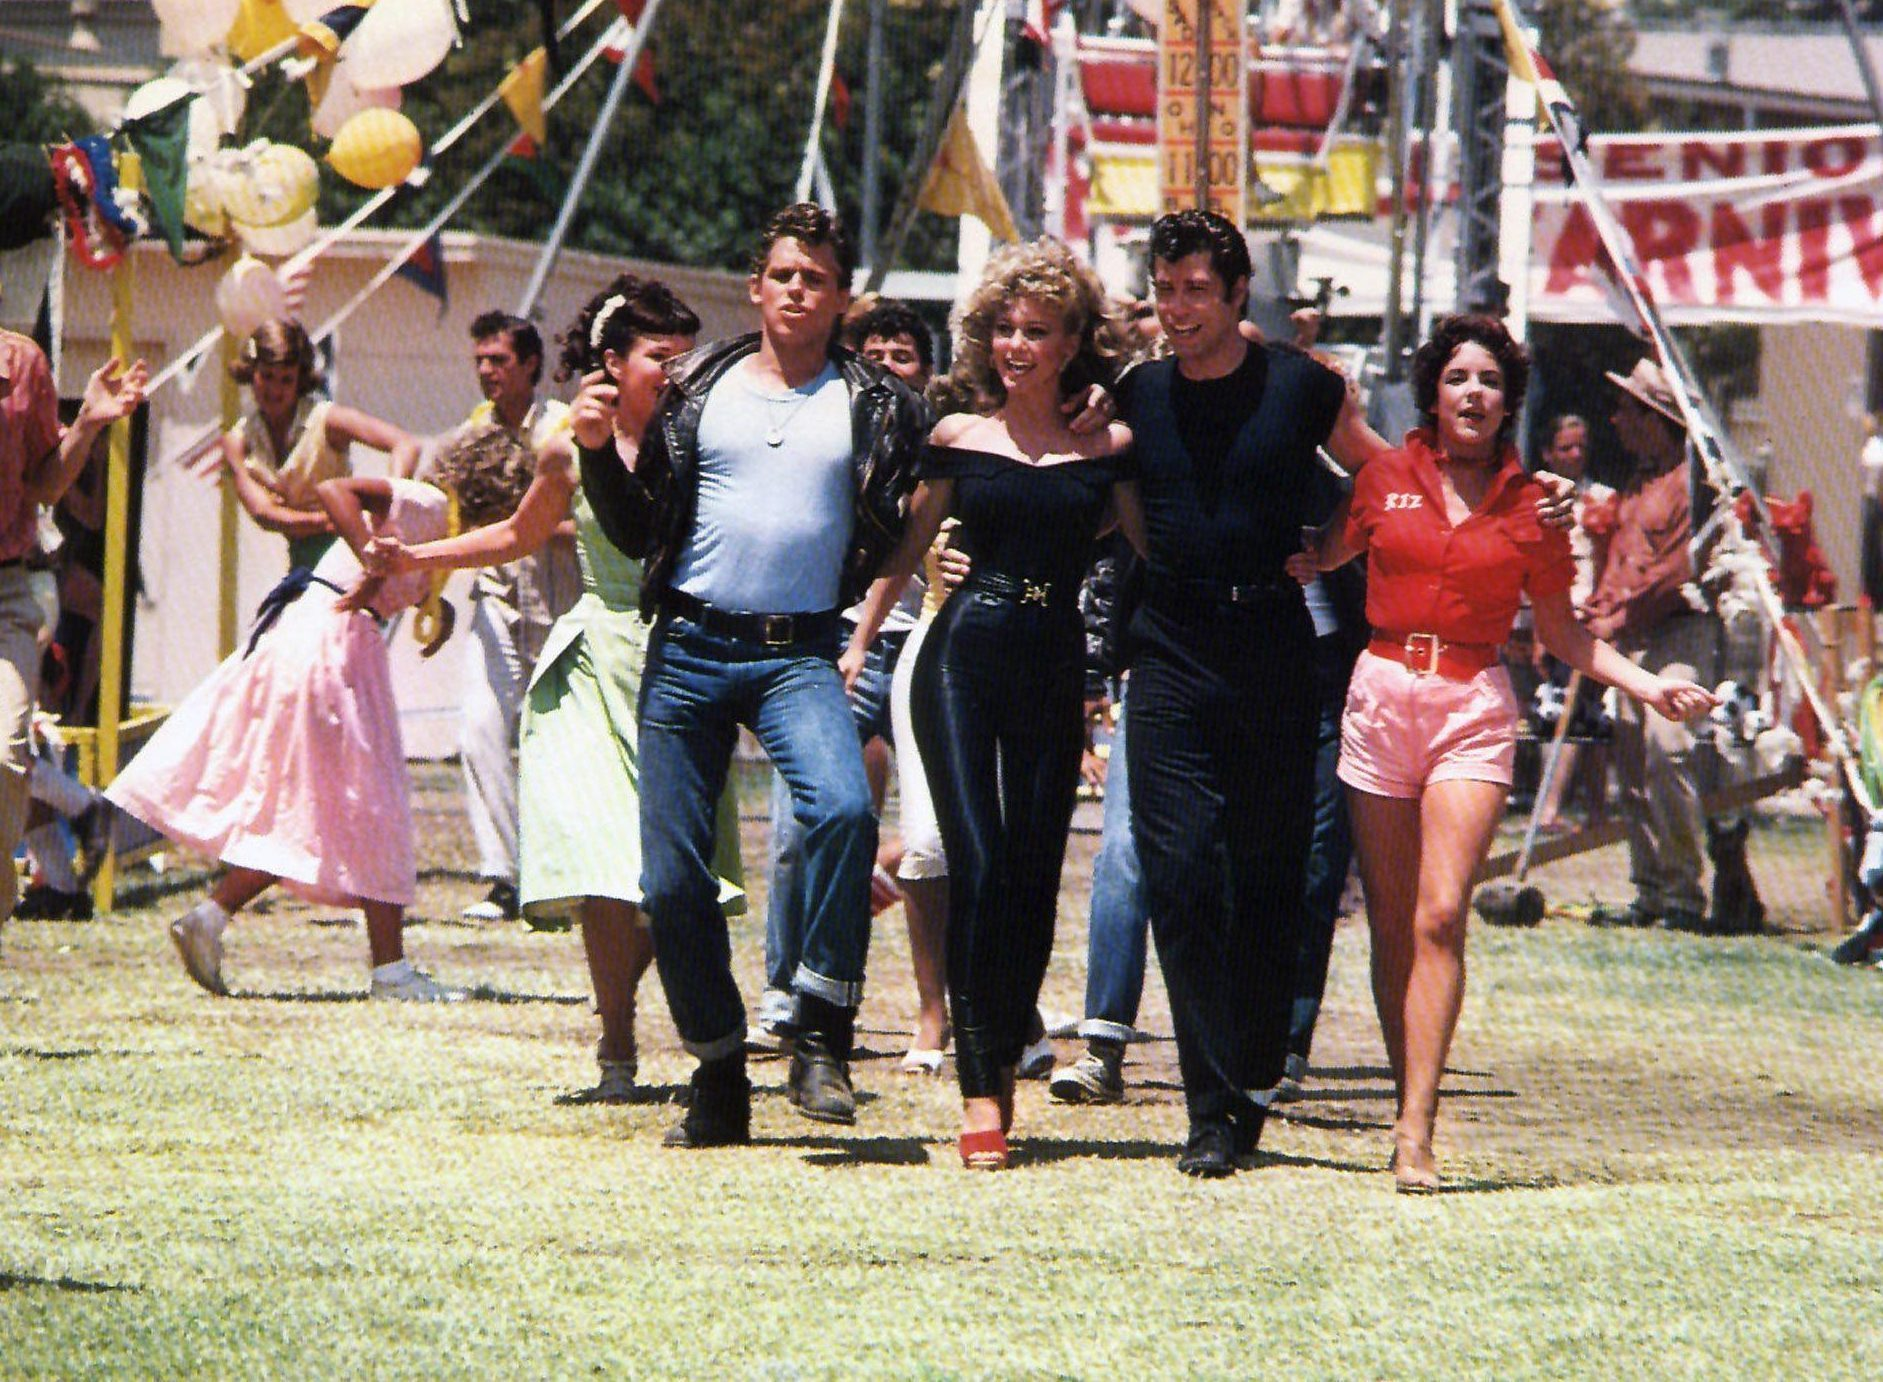 A Grease sleepover is coming to the UK to mark the film's 40th anniversary… and we are beyond excited